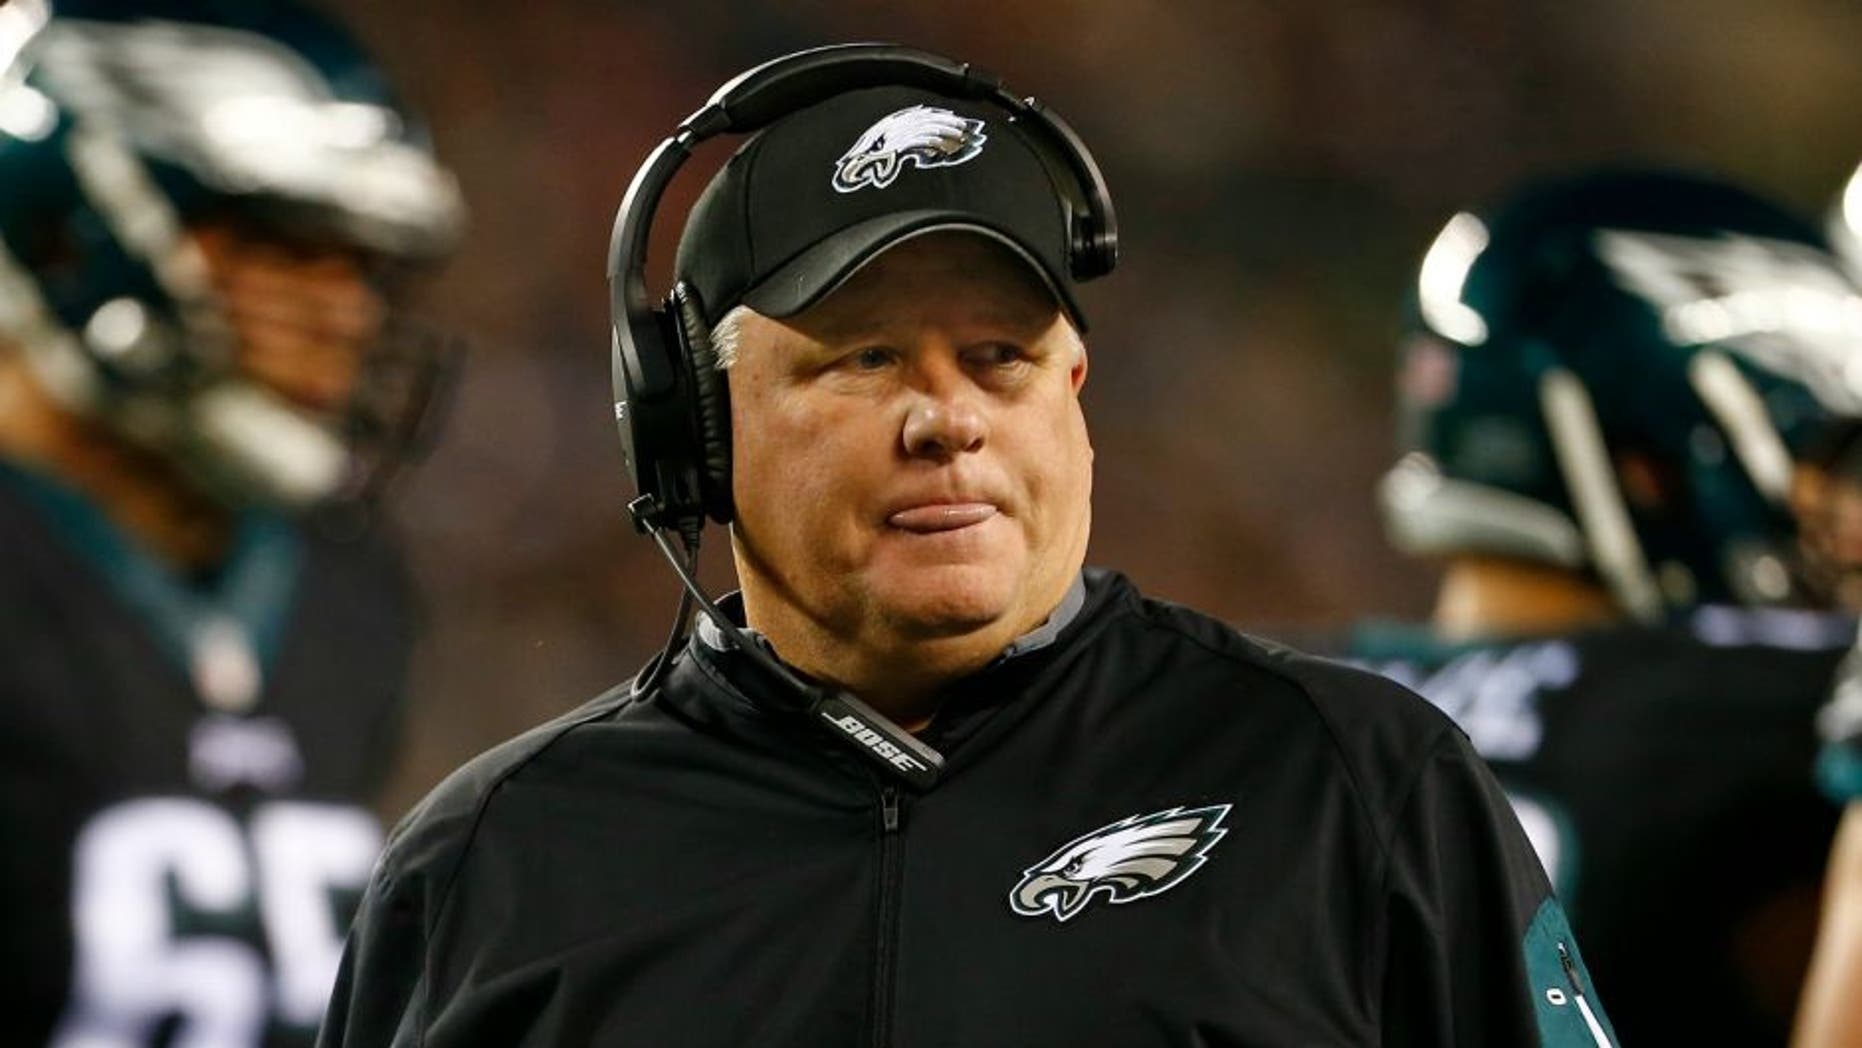 Head coach Chip Kelly of the Philadelphia Eagles during a game against the New York Giants at Lincoln Financial Field on October 19, 2015 (Photo by Rich Schultz /Getty Images)